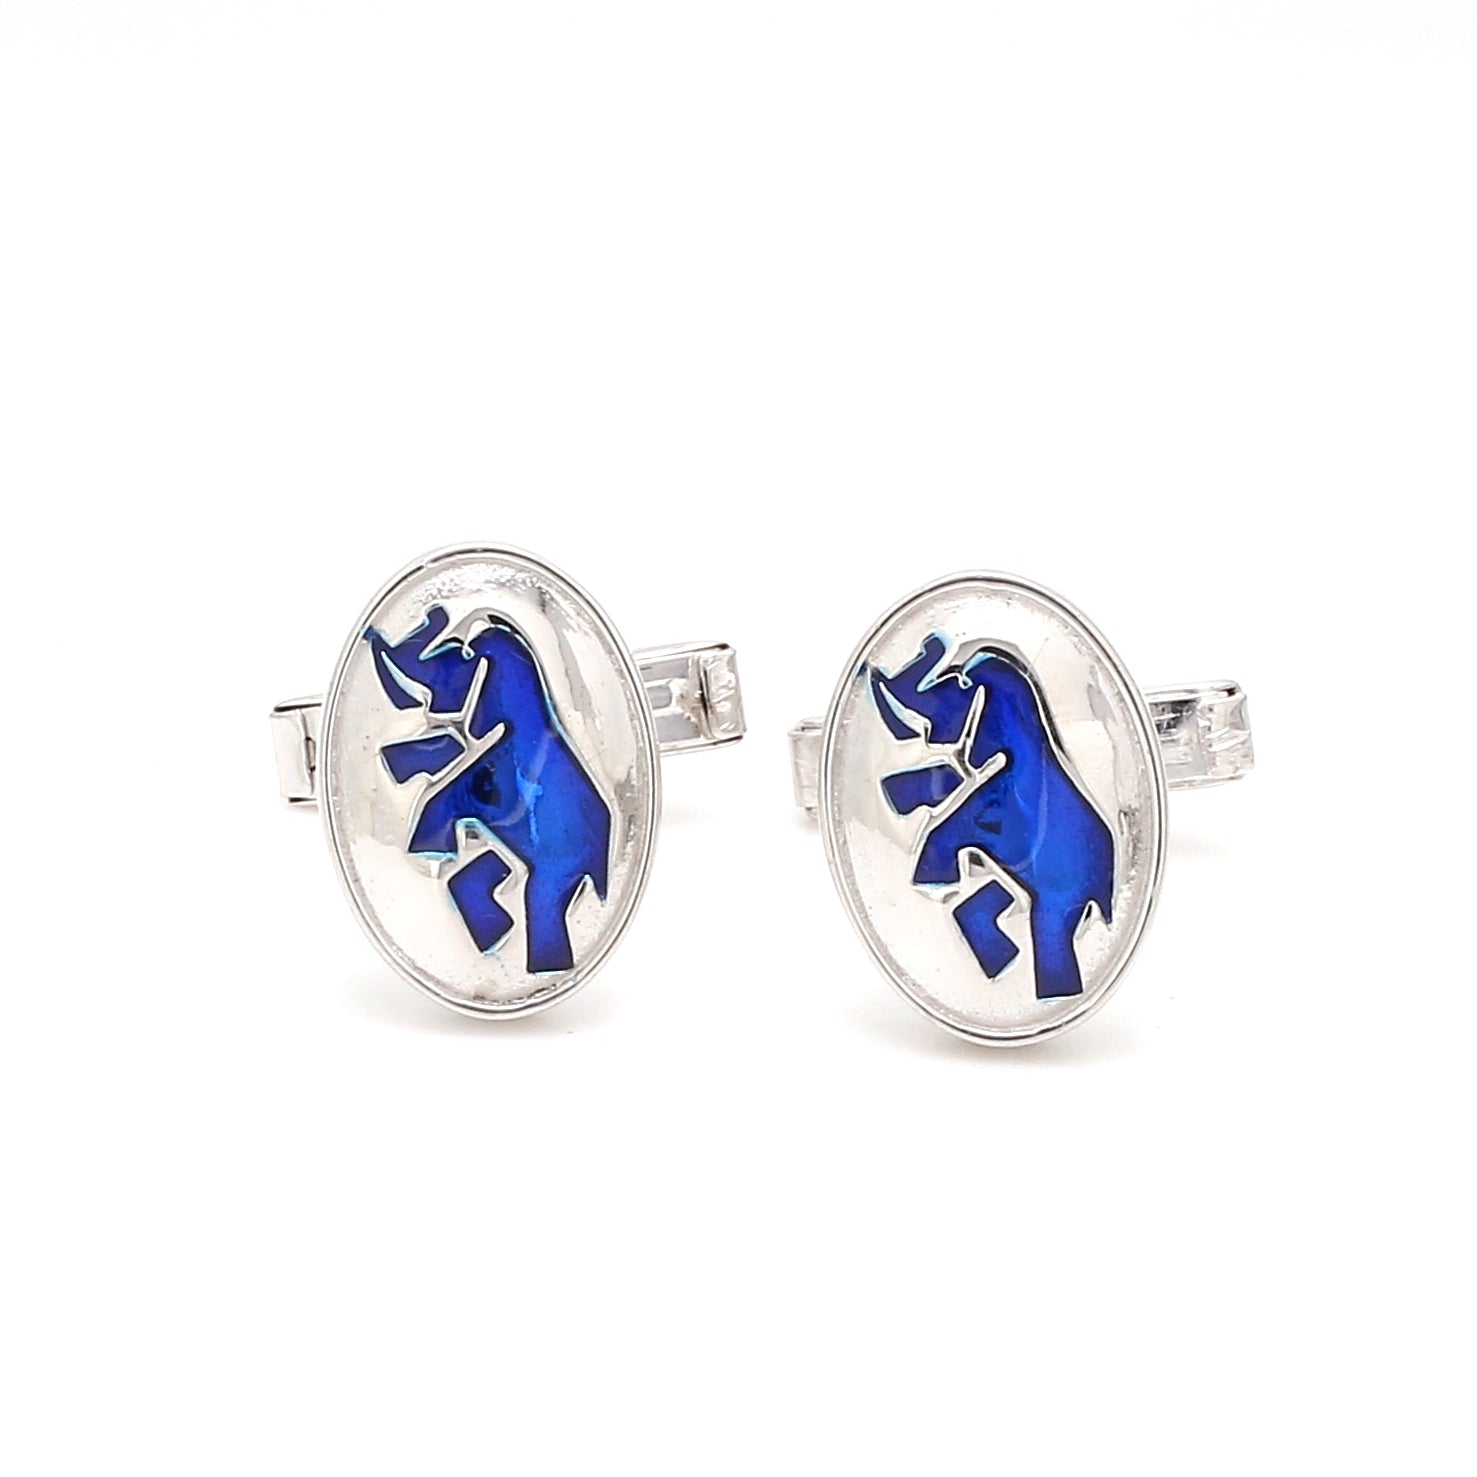 Front View of 925 Silver Cufflinks for Men with Blue Enamel JL AGC 5